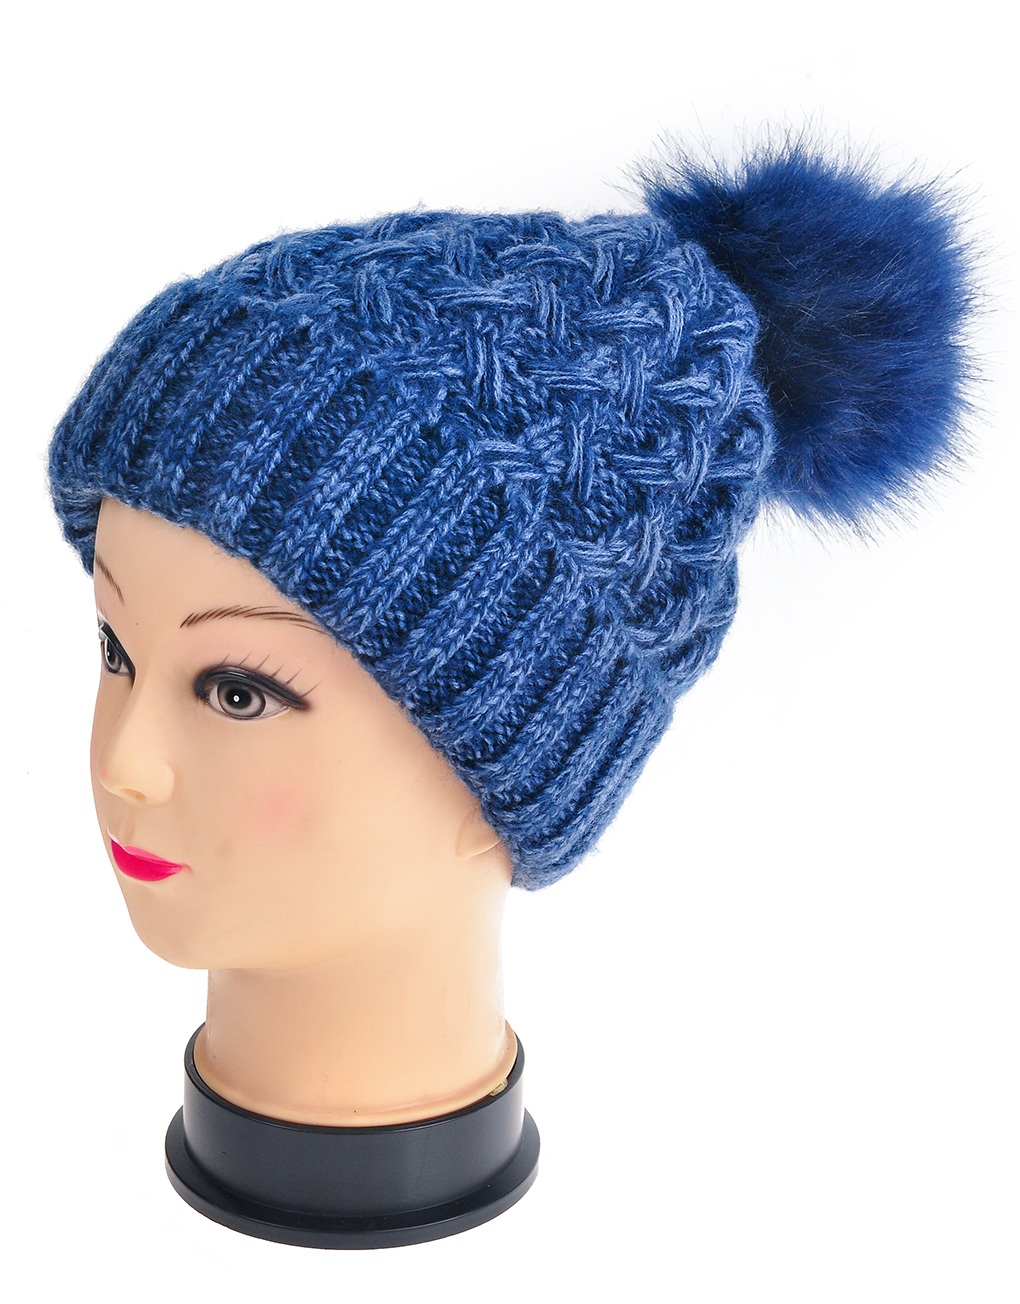 00e223c33651d Twisted Twill Pompom Beanie Hats - Luxe Wholesale